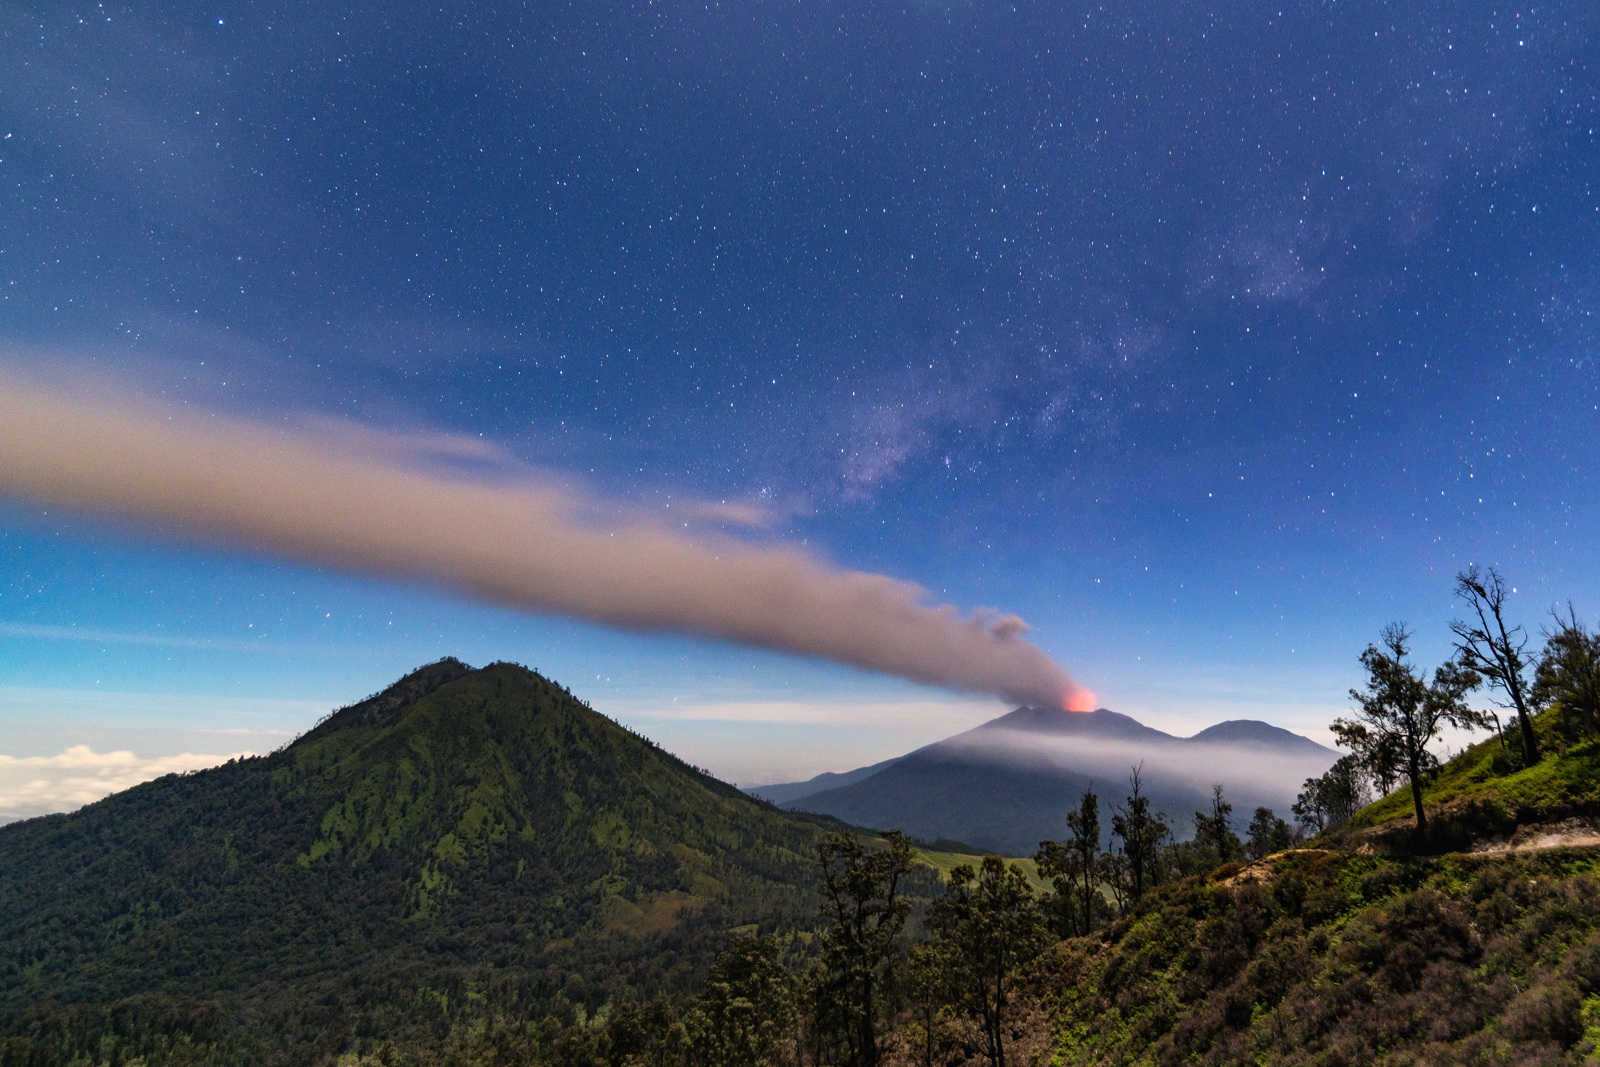 Mount Raung erupting under the stars.